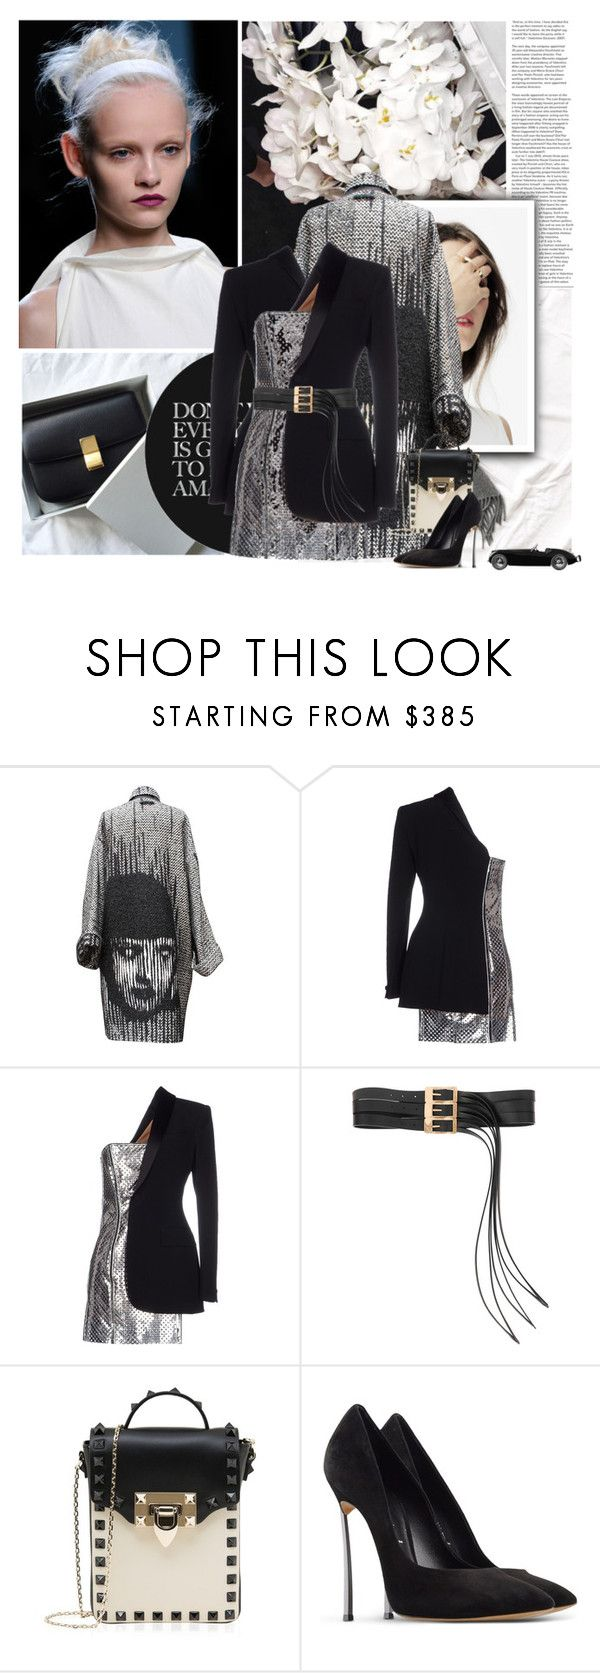 """""""Untitled #277"""" by cheetahsorcashmere ❤ liked on Polyvore featuring Jean-Paul Gaultier, Maison Margiela, Valentino, Casadei, women's clothing, women's fashion, women, female, woman and misses"""